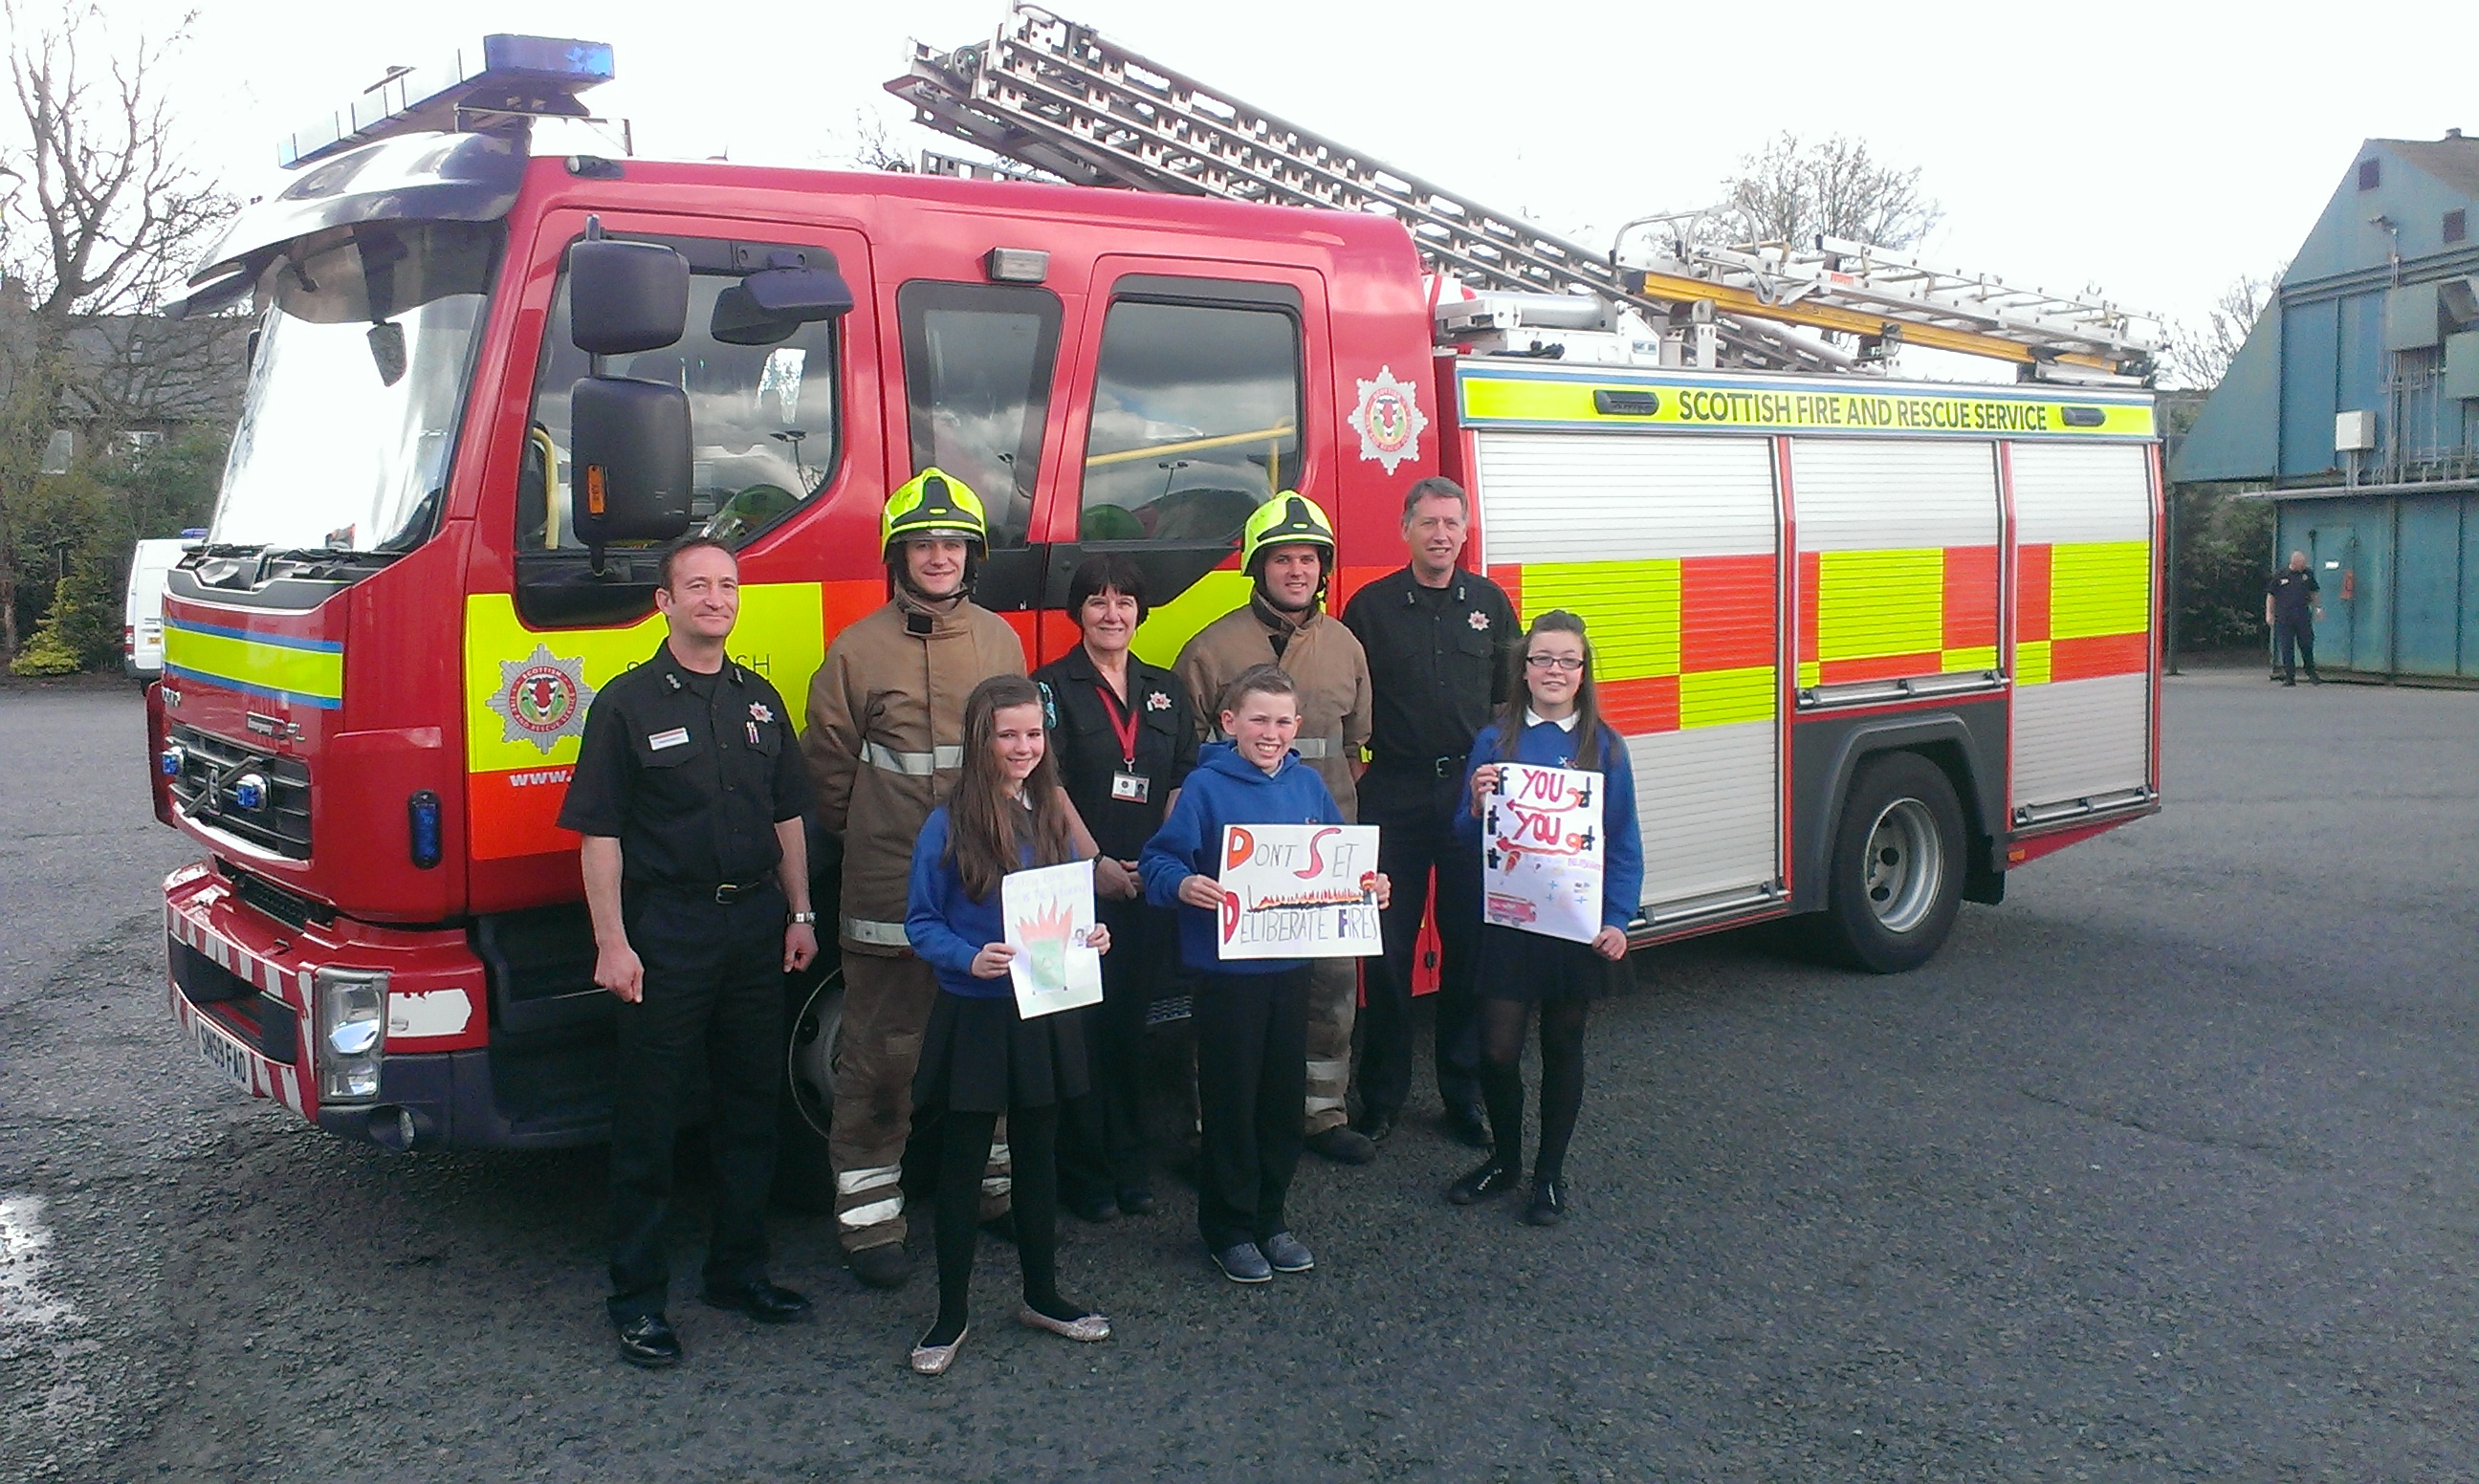 Firefighters at Falkirk fire station are warning the kids of the dangers of deliberate fires